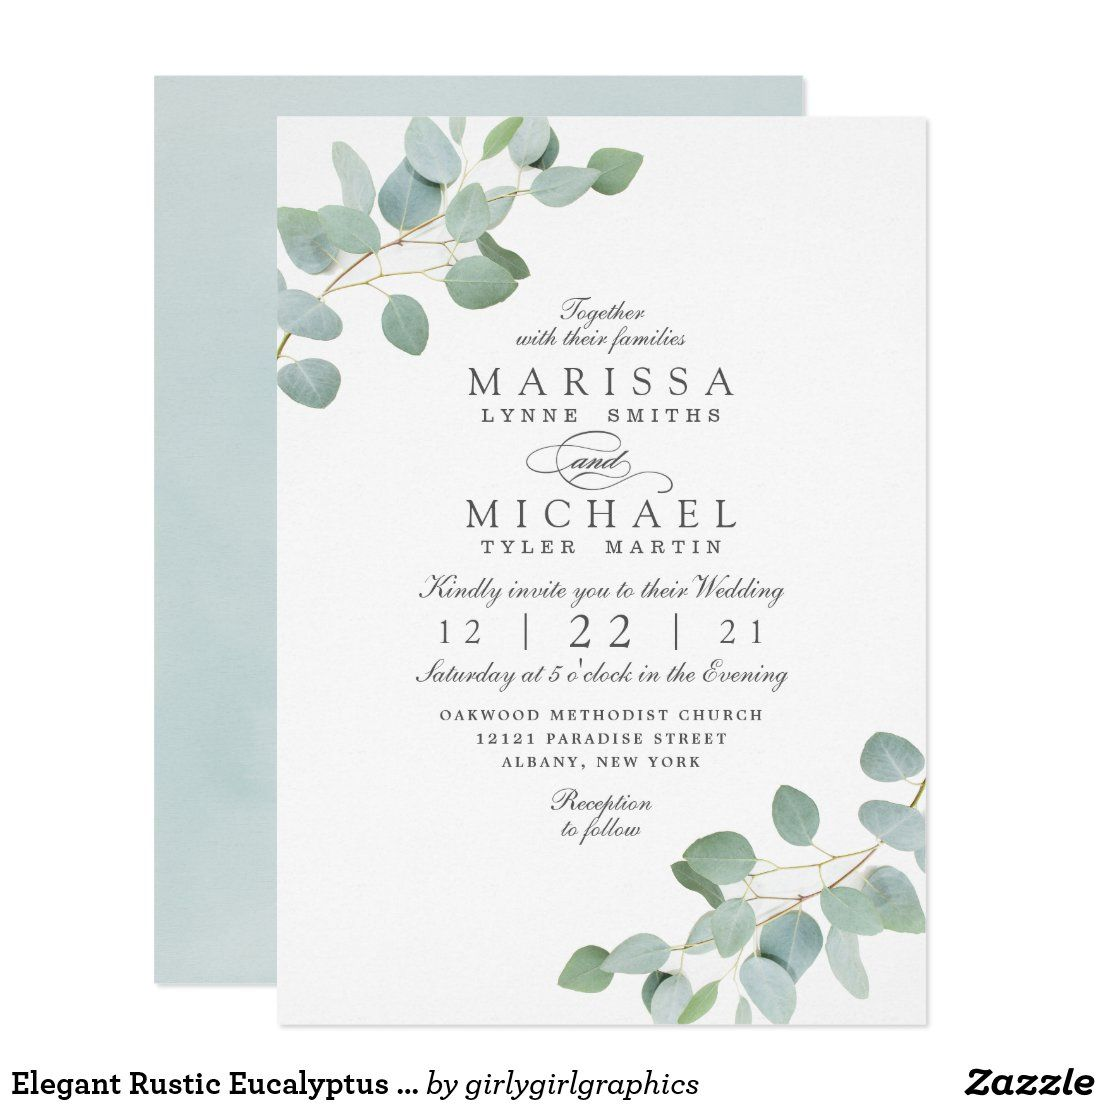 Elegant Rustic Eucalyptus Chic Wedding Invitation